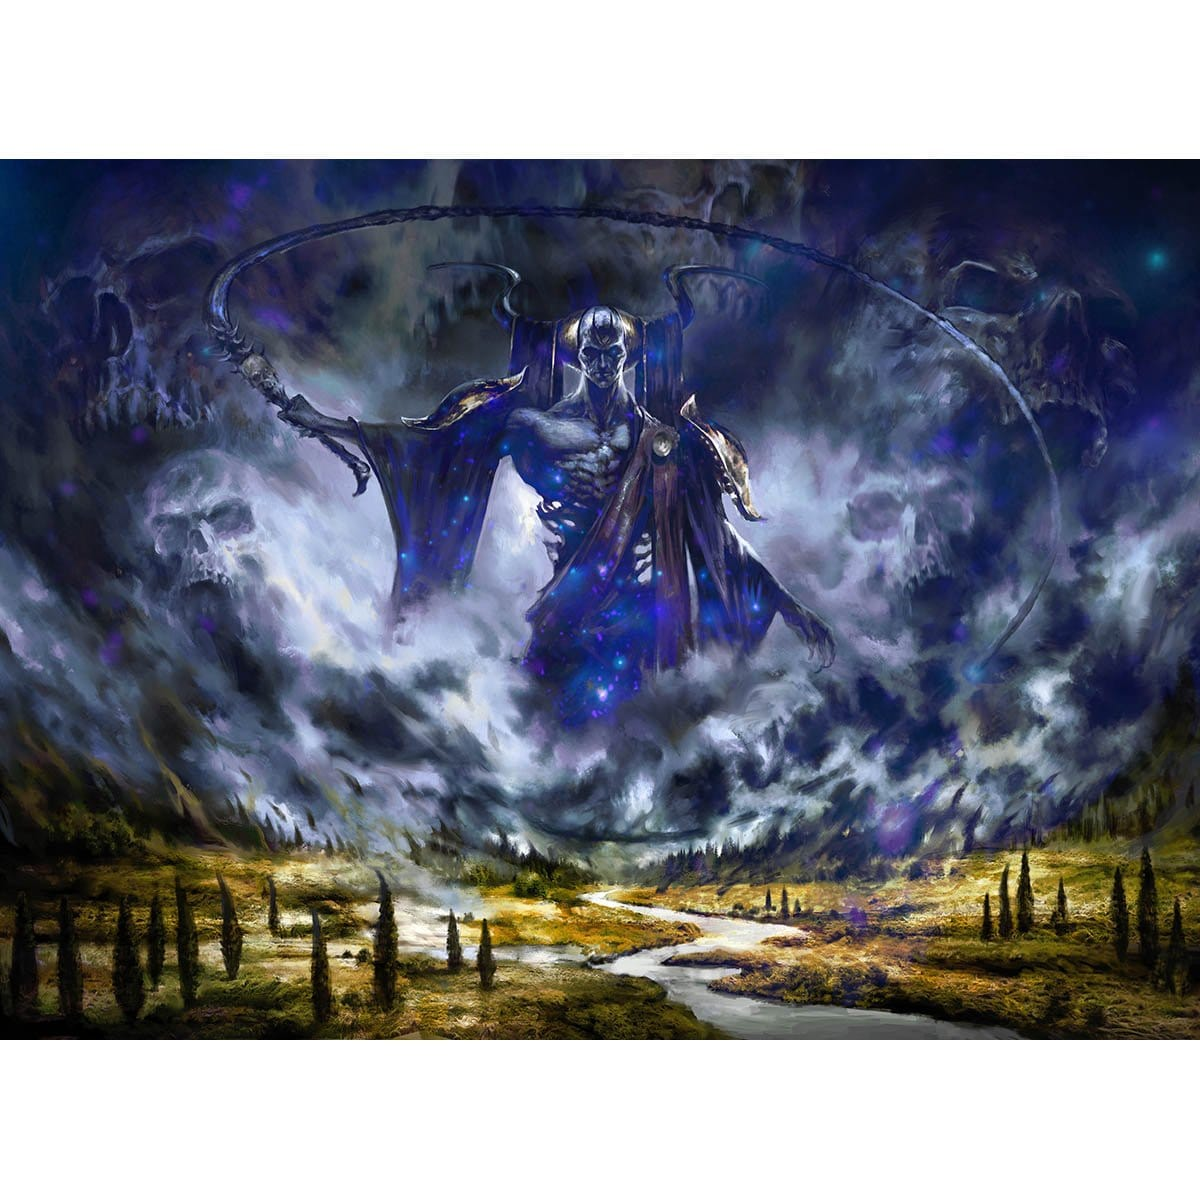 Erebos's Intervention Print - Print - Original Magic Art - Accessories for Magic the Gathering and other card games